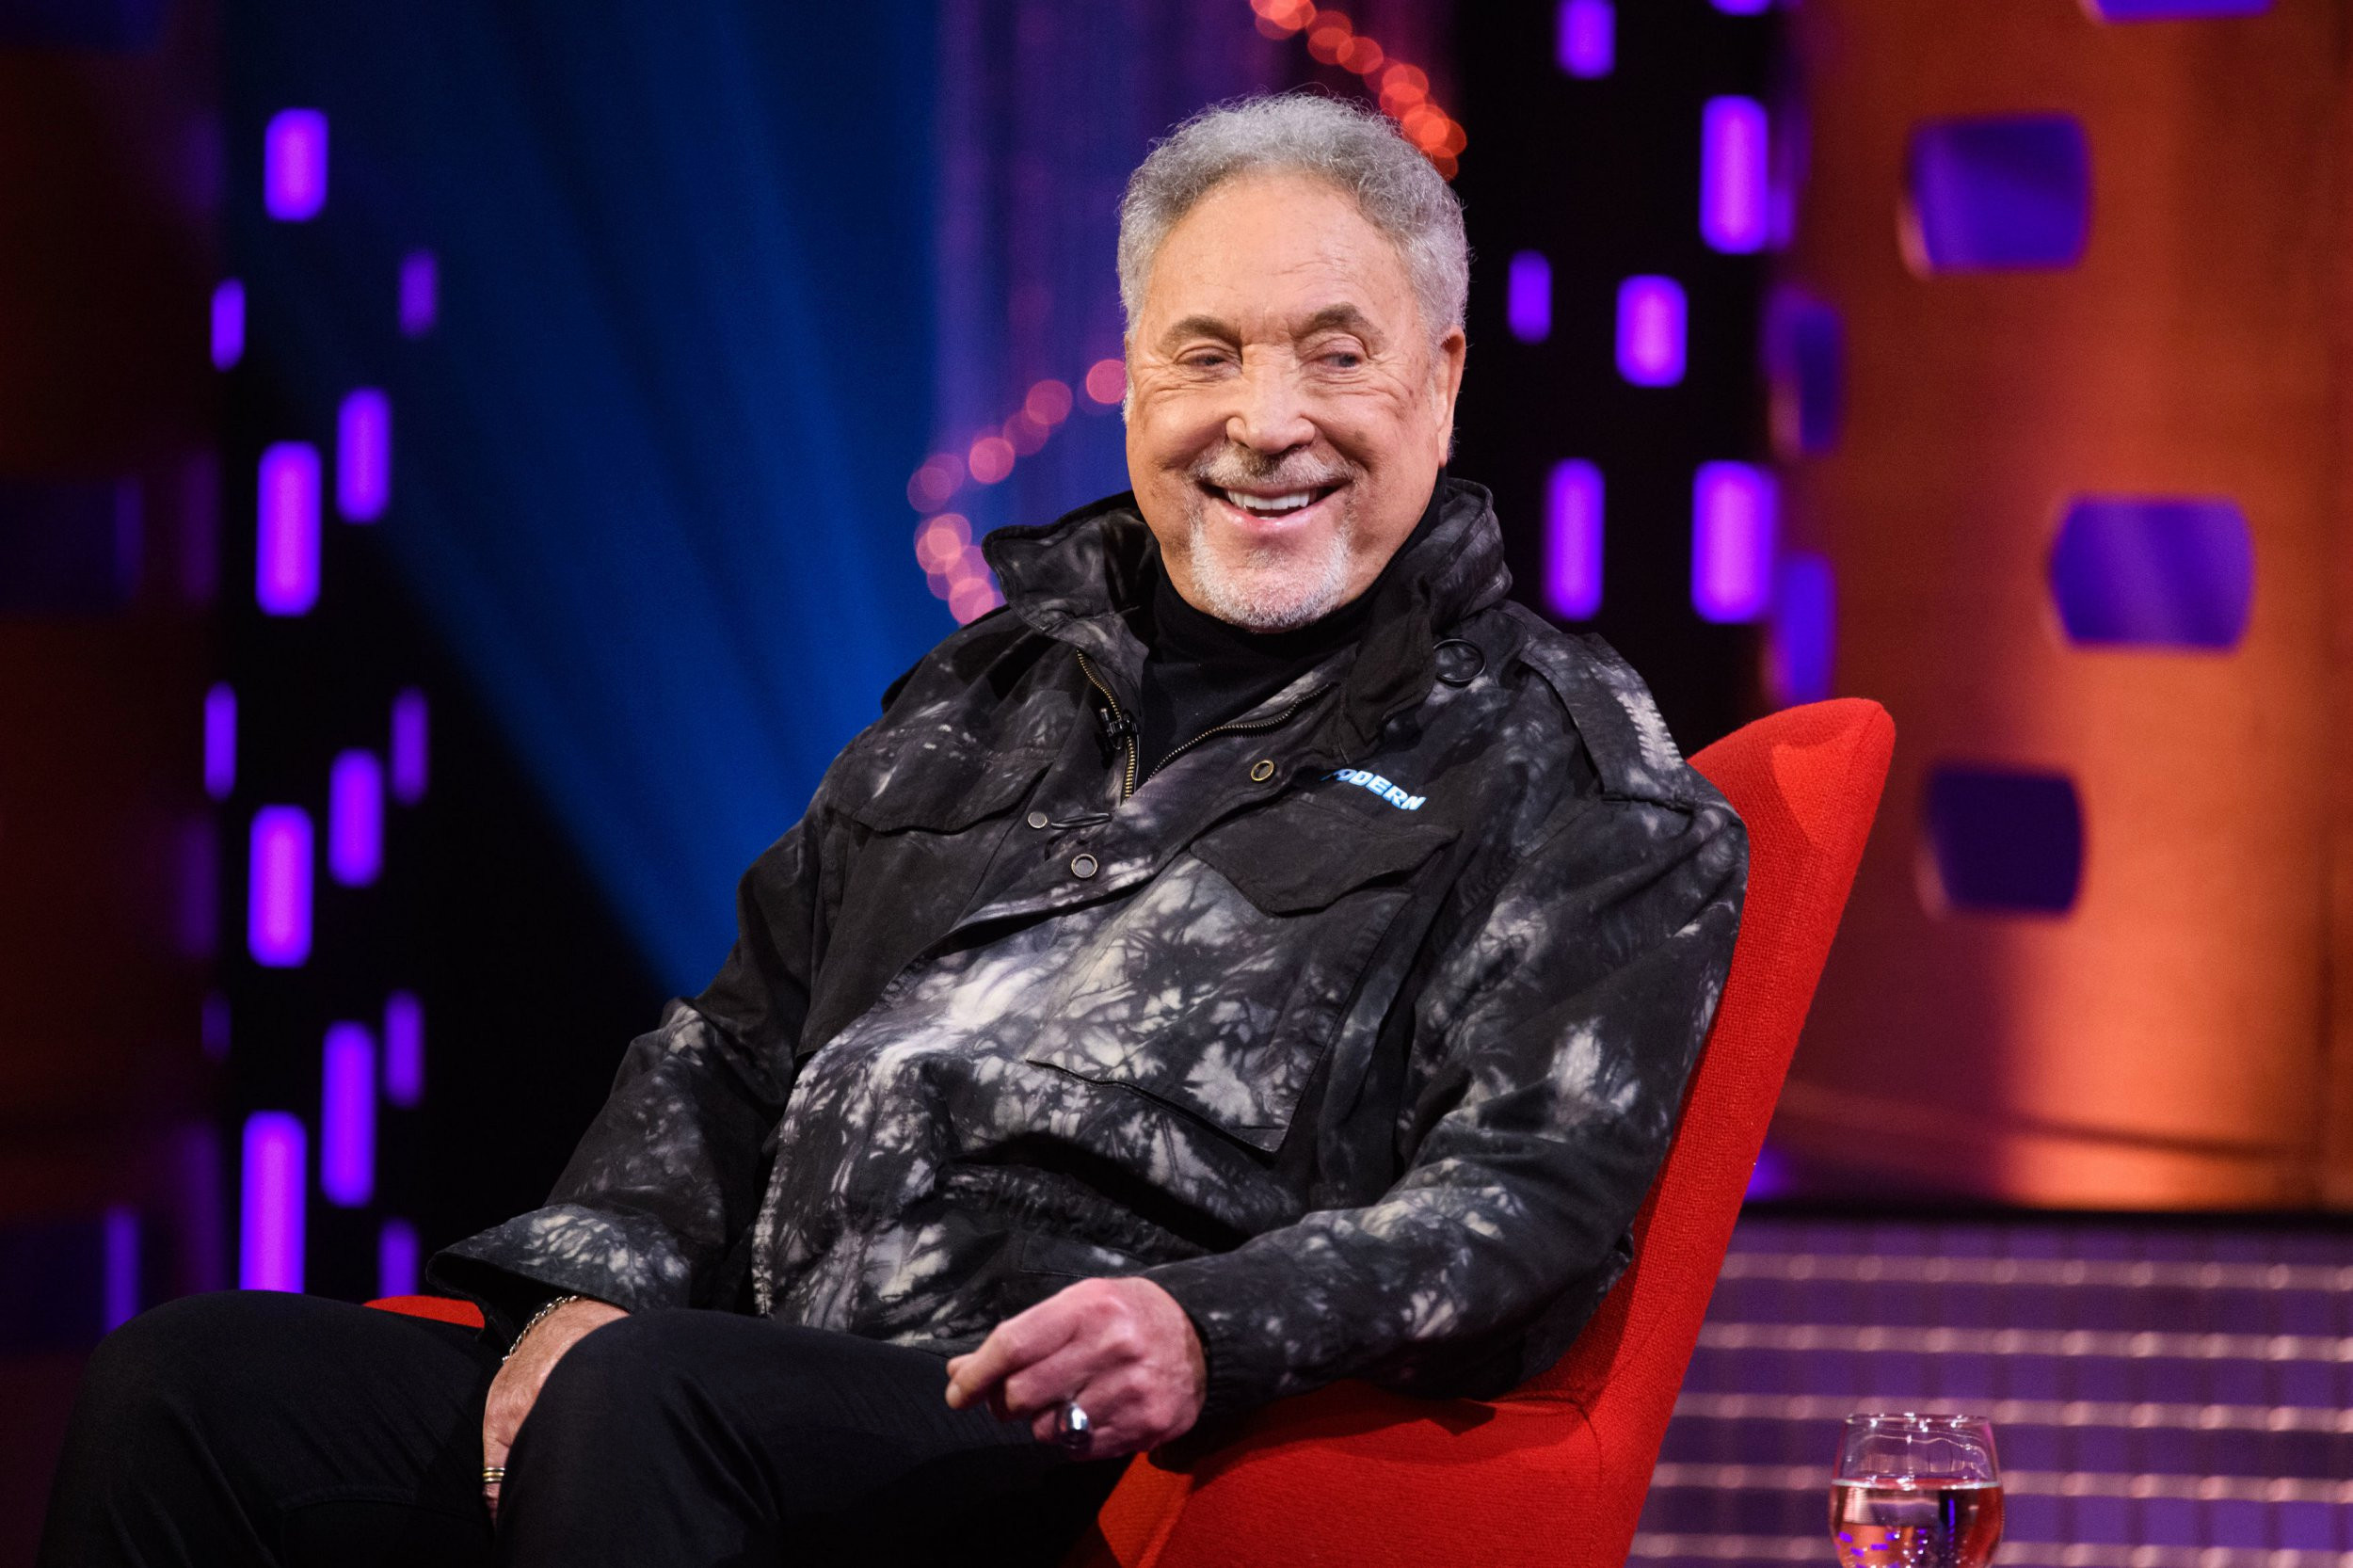 Sir Tom Jones reveals bizarre bat-like therapy technique he uses to stay in shape at 80